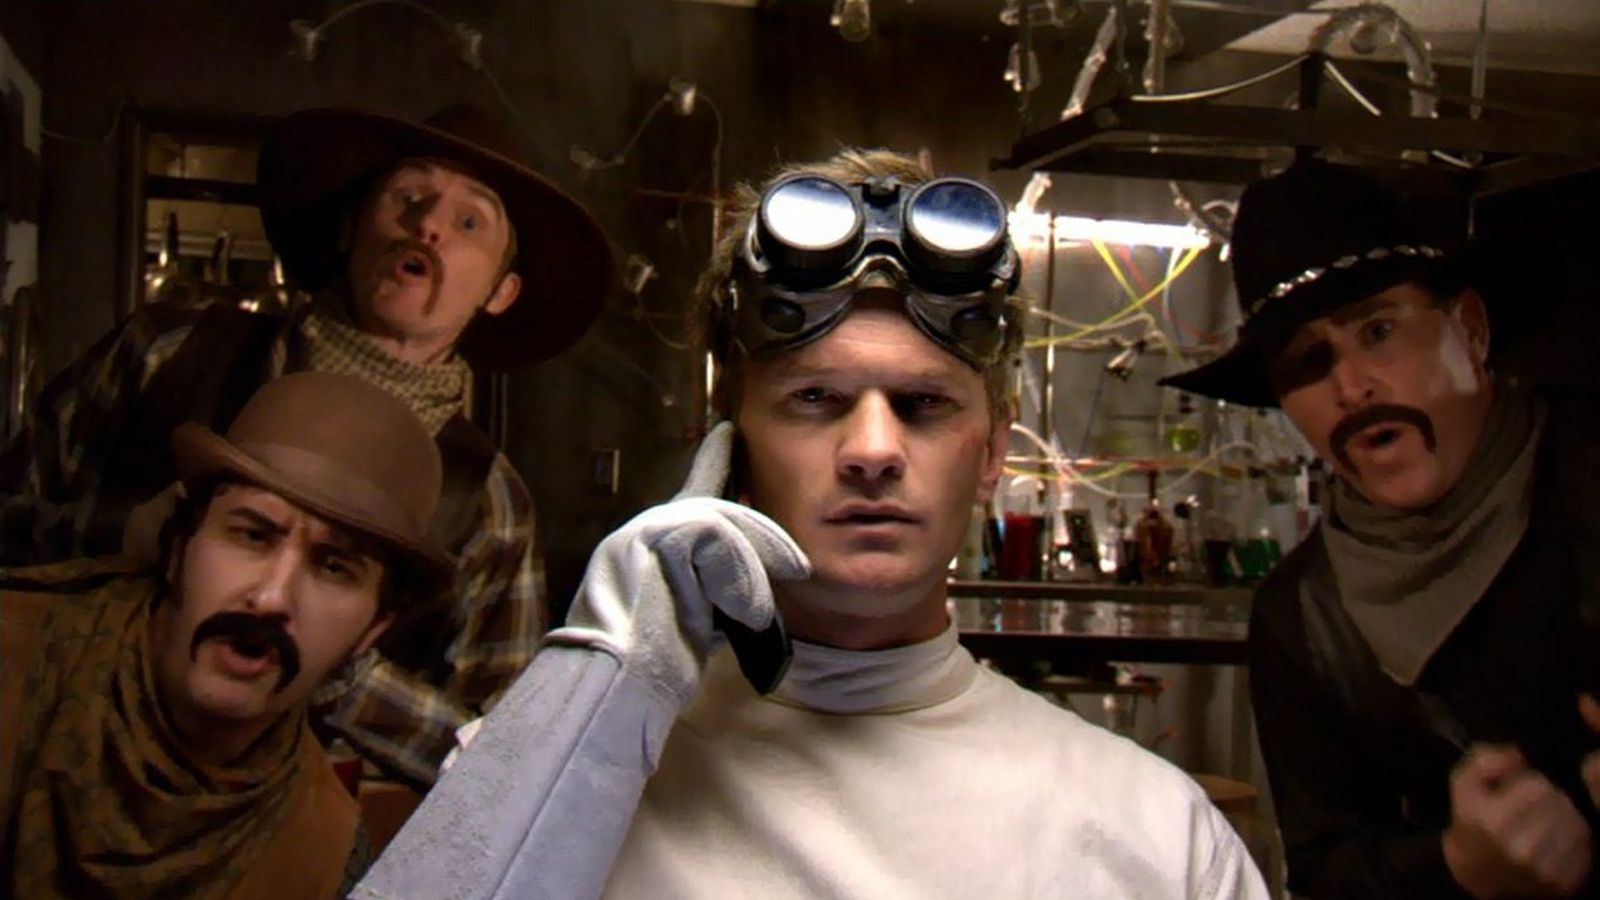 Dr. Horrible's Sing-Along Blog was the best thing to come out of the writers' strike